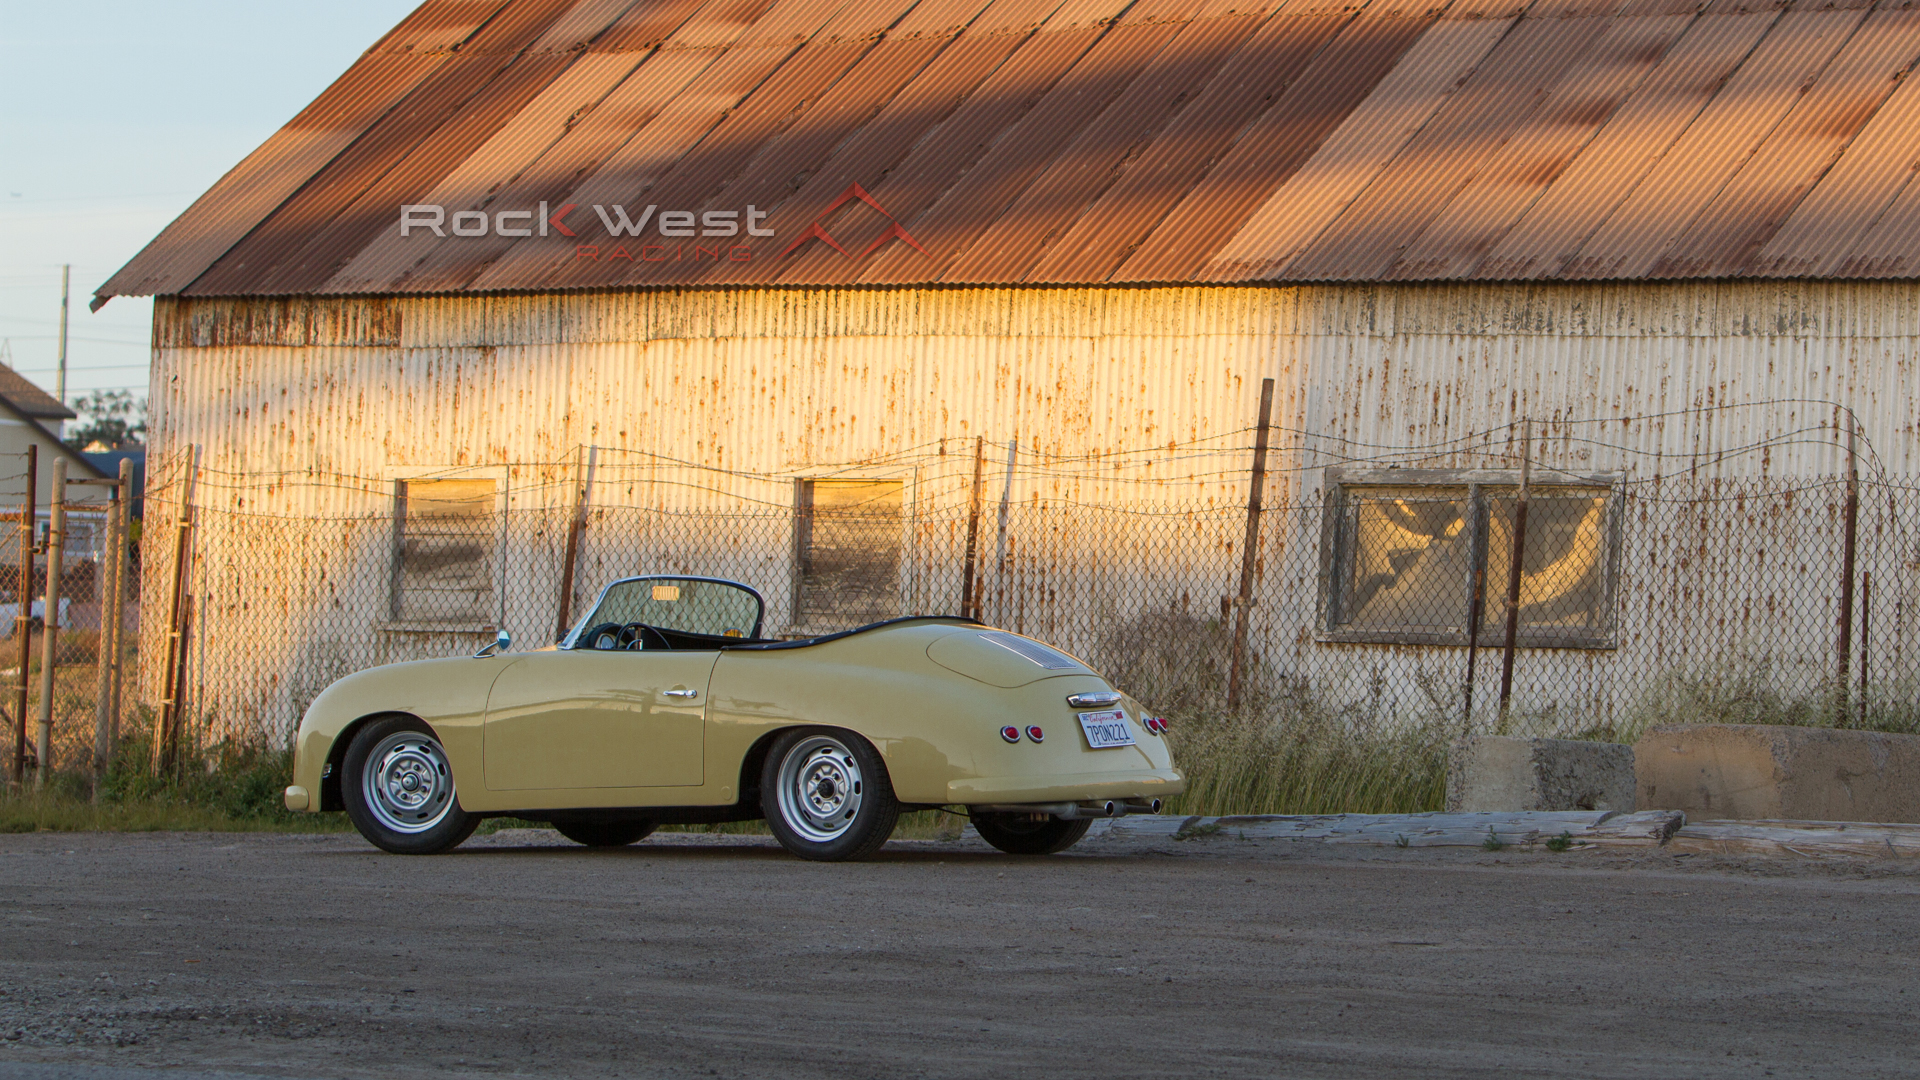 RW Speedster – By a Factory (1920 x 1080 pixels)